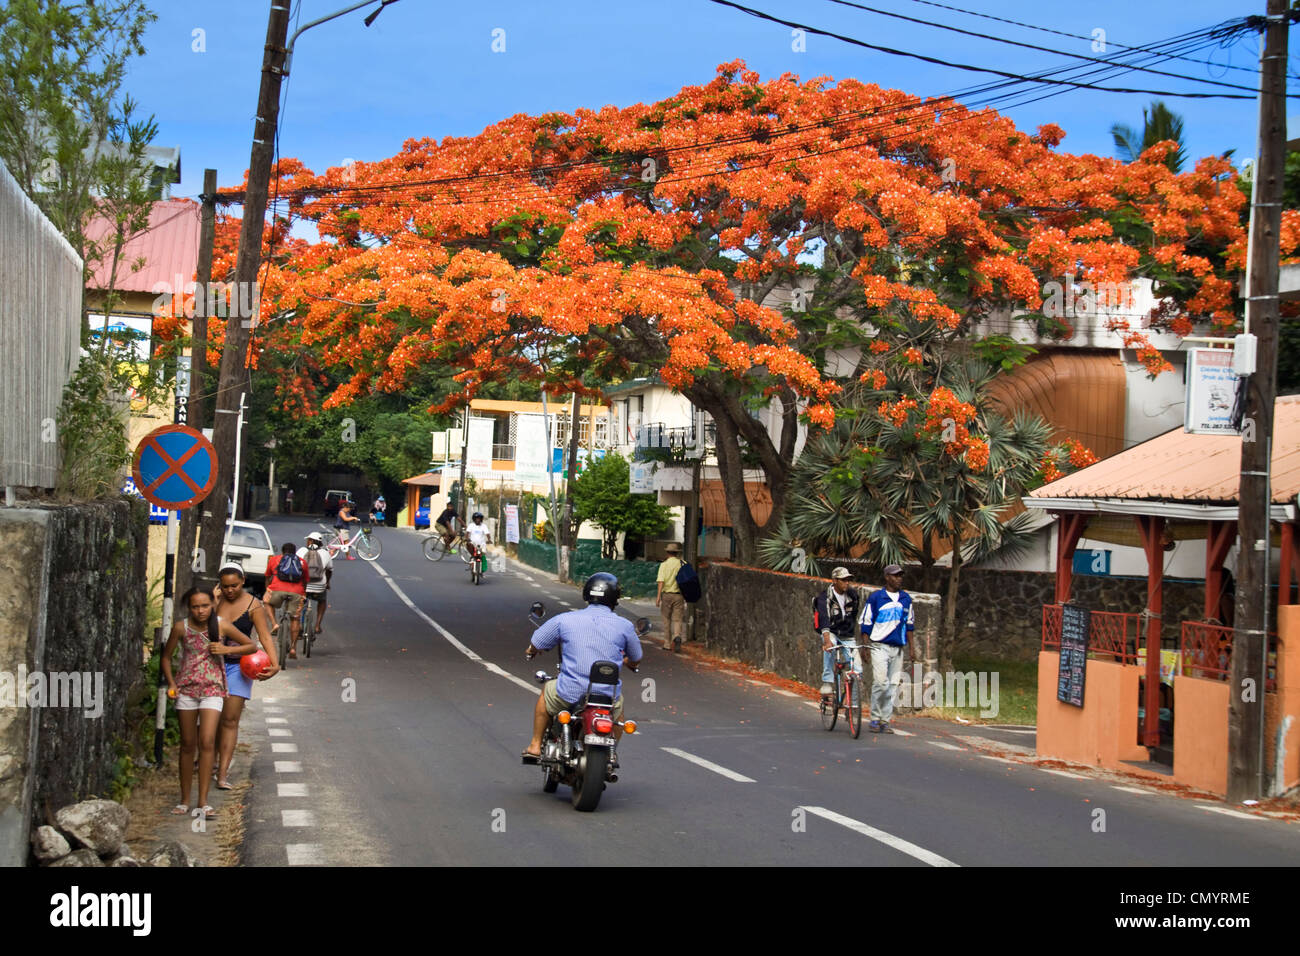 Grand Baie, Main road, Flame Tree, people, Mauritius, Africa - Stock Image